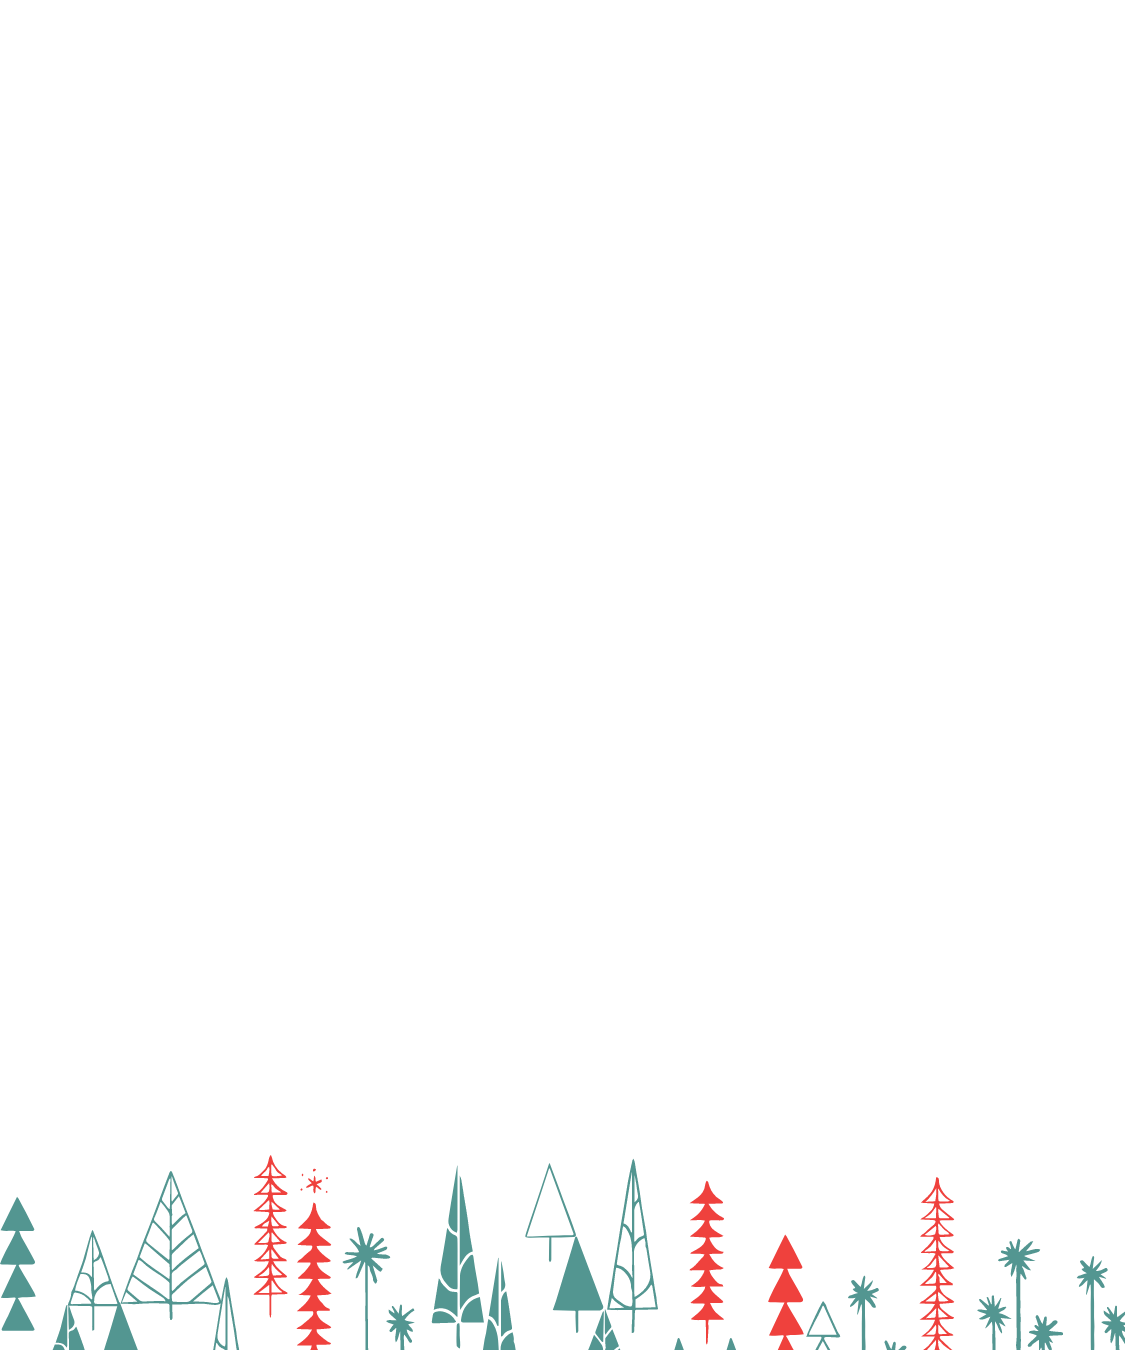 Aloha in every box - Looking for the perfect gift? Find out what's on our wish lists this holiday season. [Mobile Overlay]